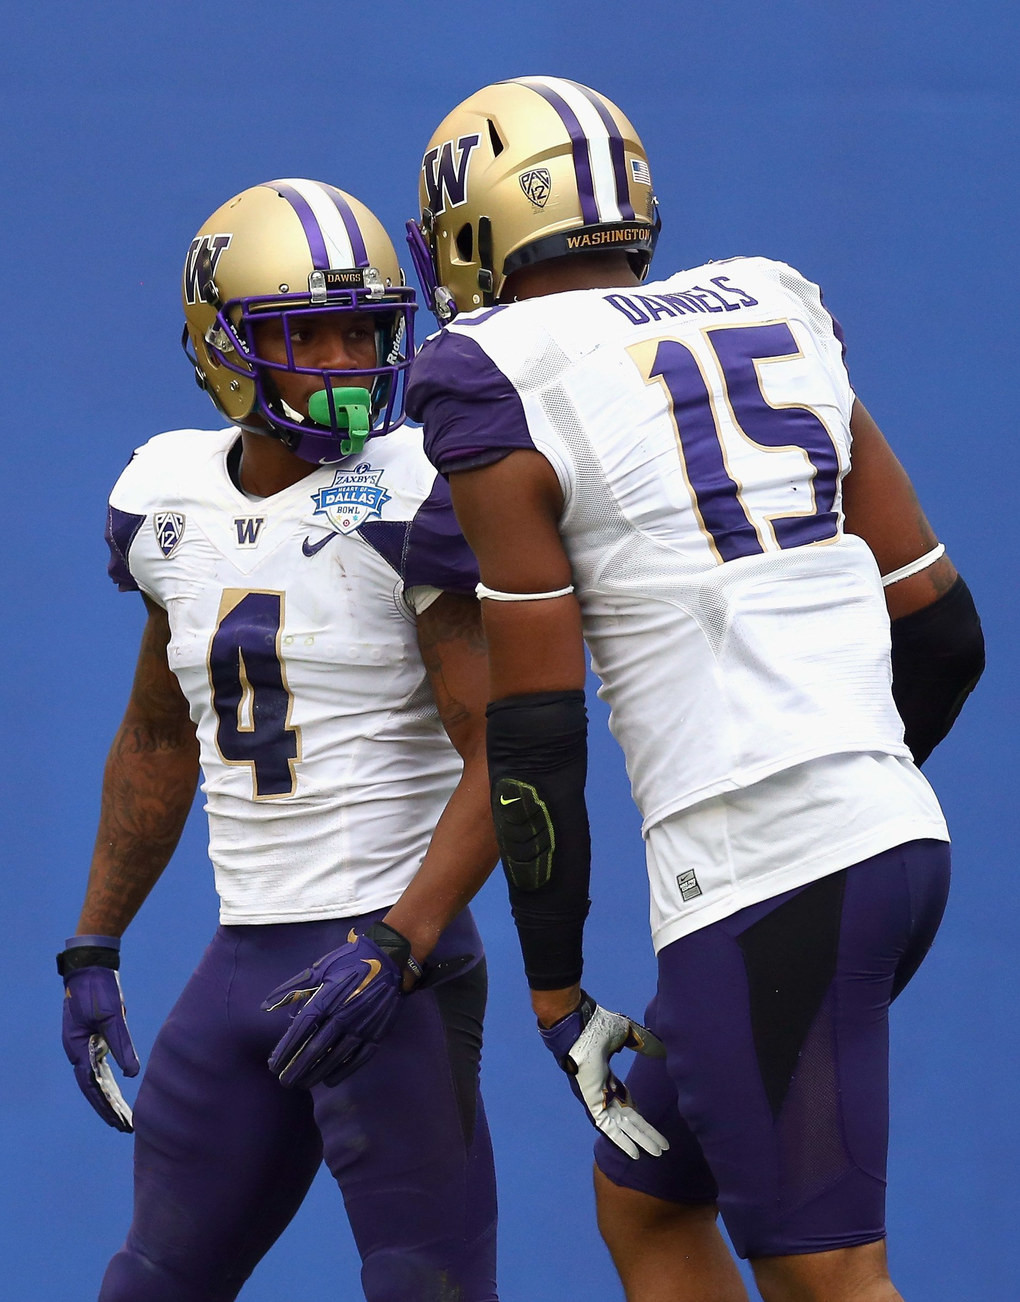 Jaydon Mickens#4 of the Washington Huskies celebrates his touchdown with Darrell Daniels #15 against the Southern Miss Golden Eagles during the Zaxby's Heart of Dallas Bowl at Cotton Bowl on December 26, 2015 in Dallas, Texas.  (Photo by Ronald Martinez/Getty Images)